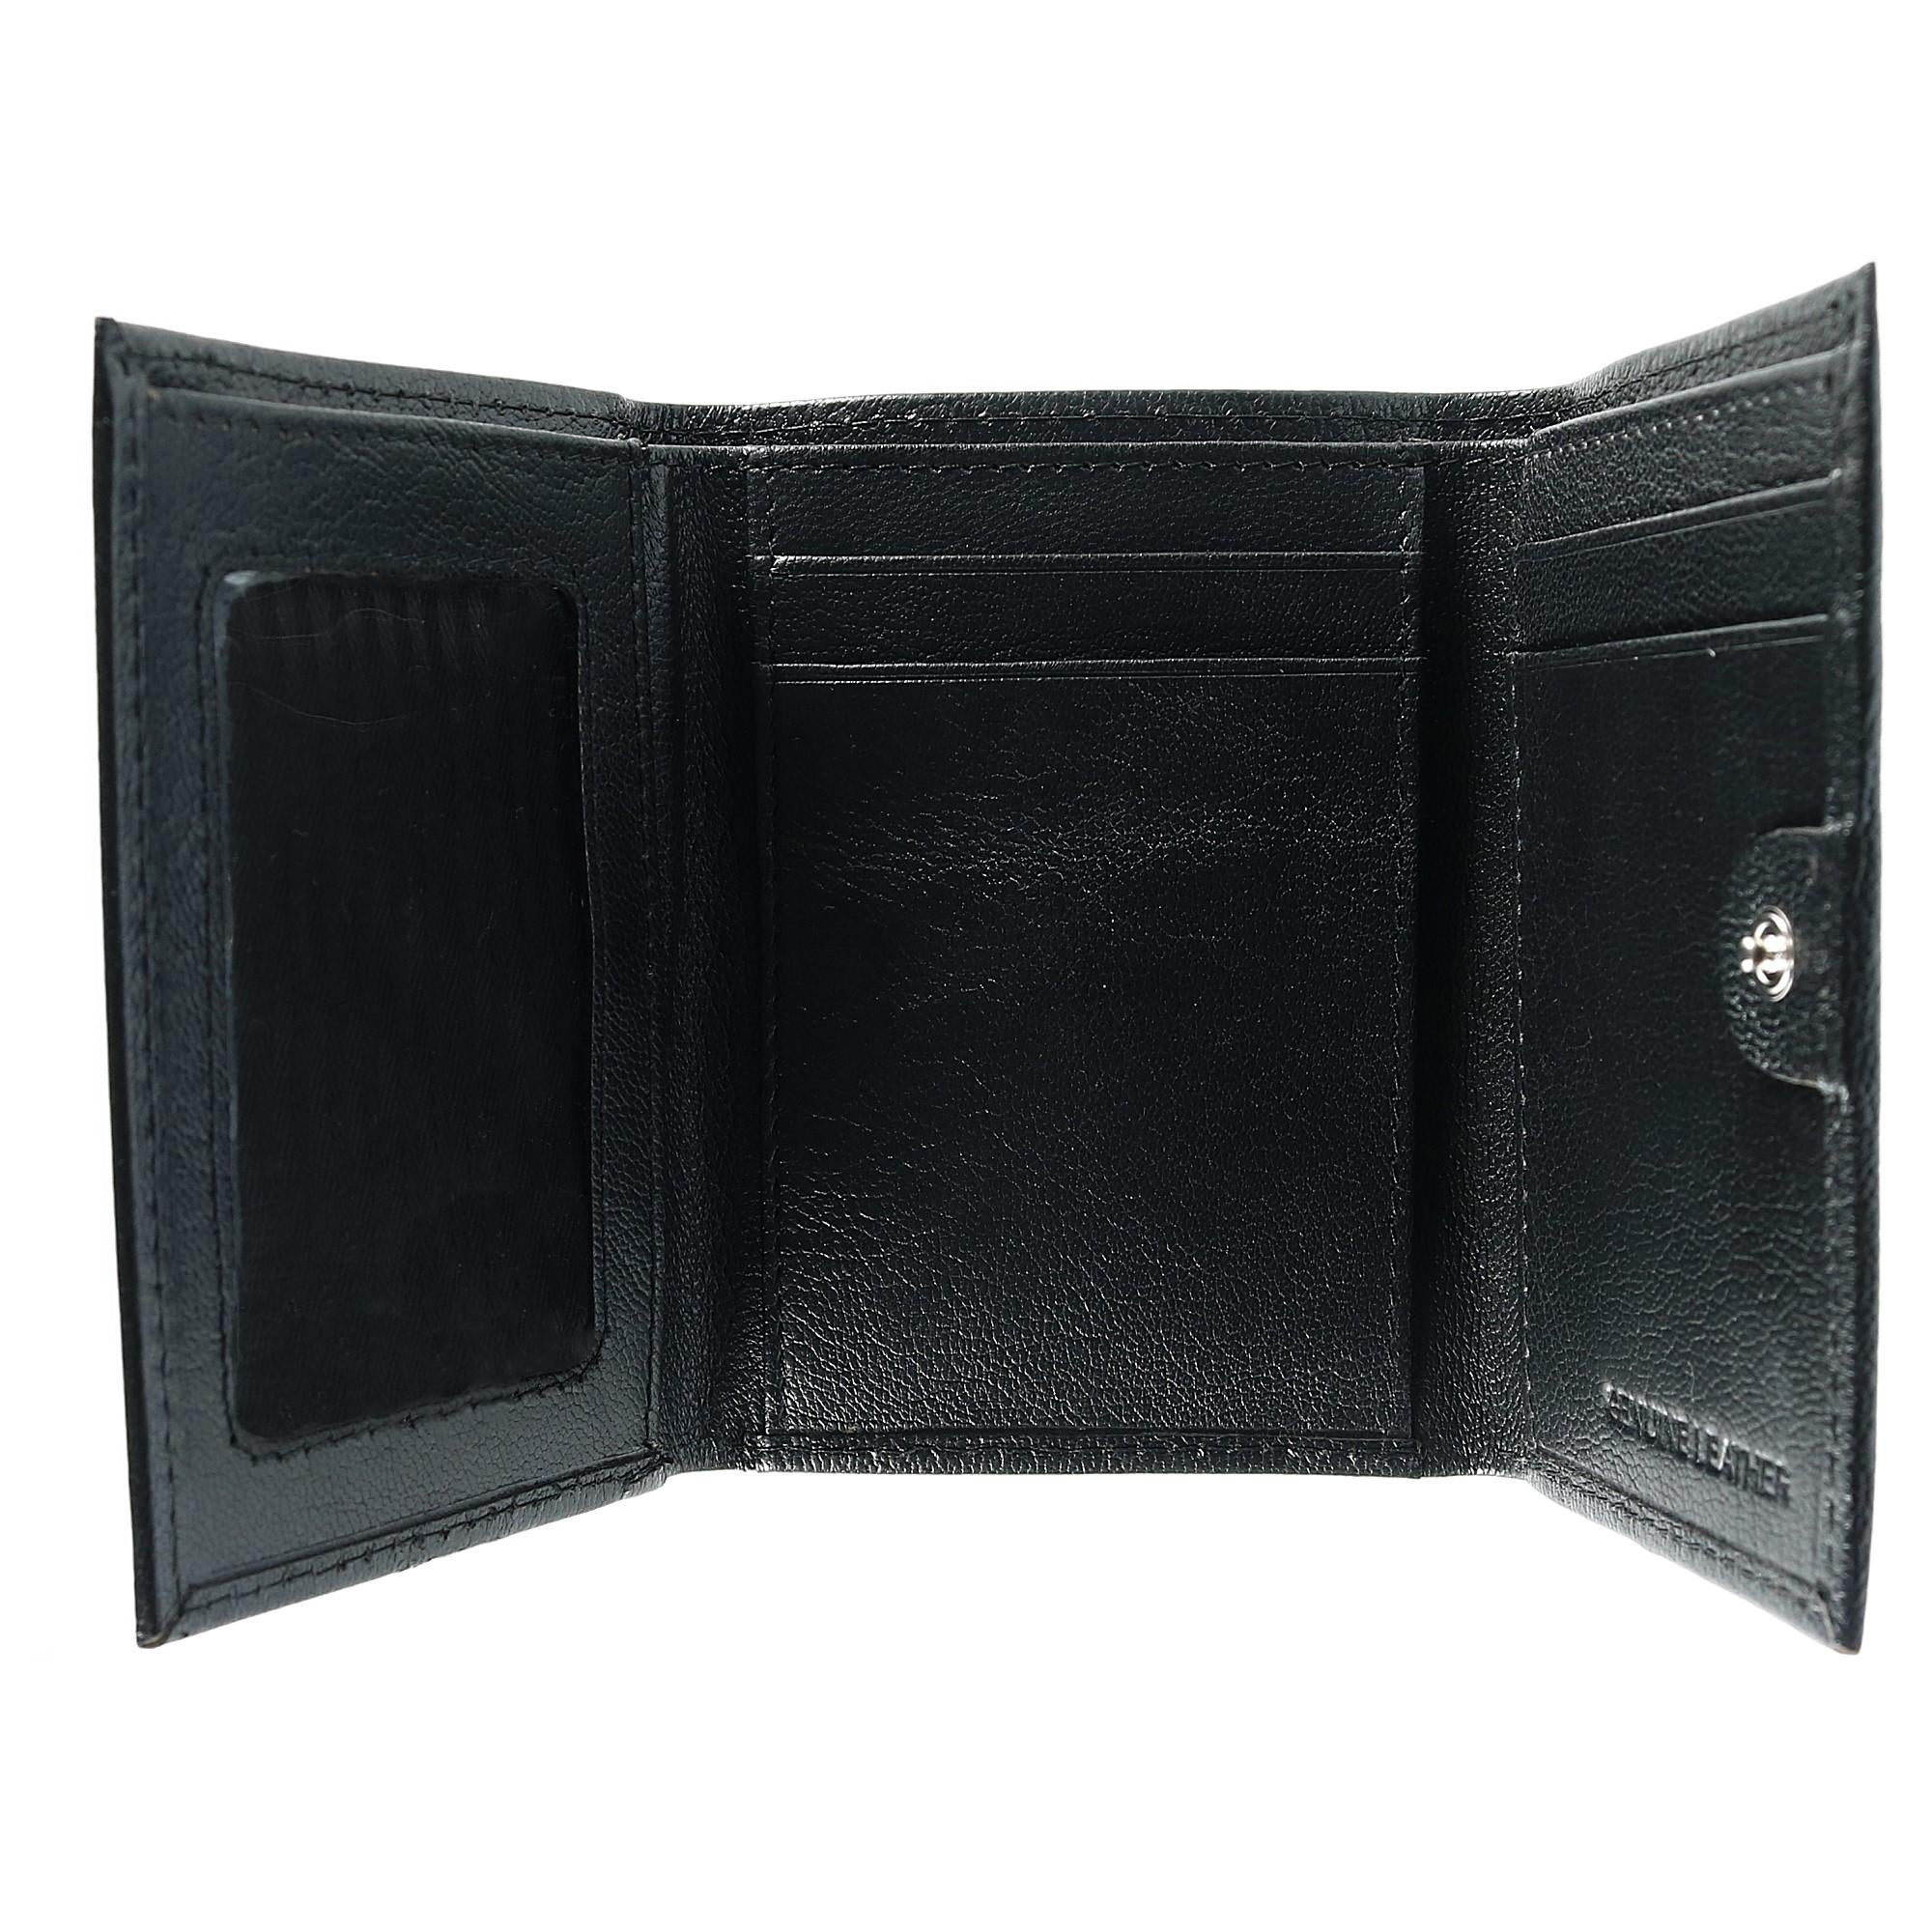 Sophos Mens Leather Trifold Credit Card Holder with Snap Closure